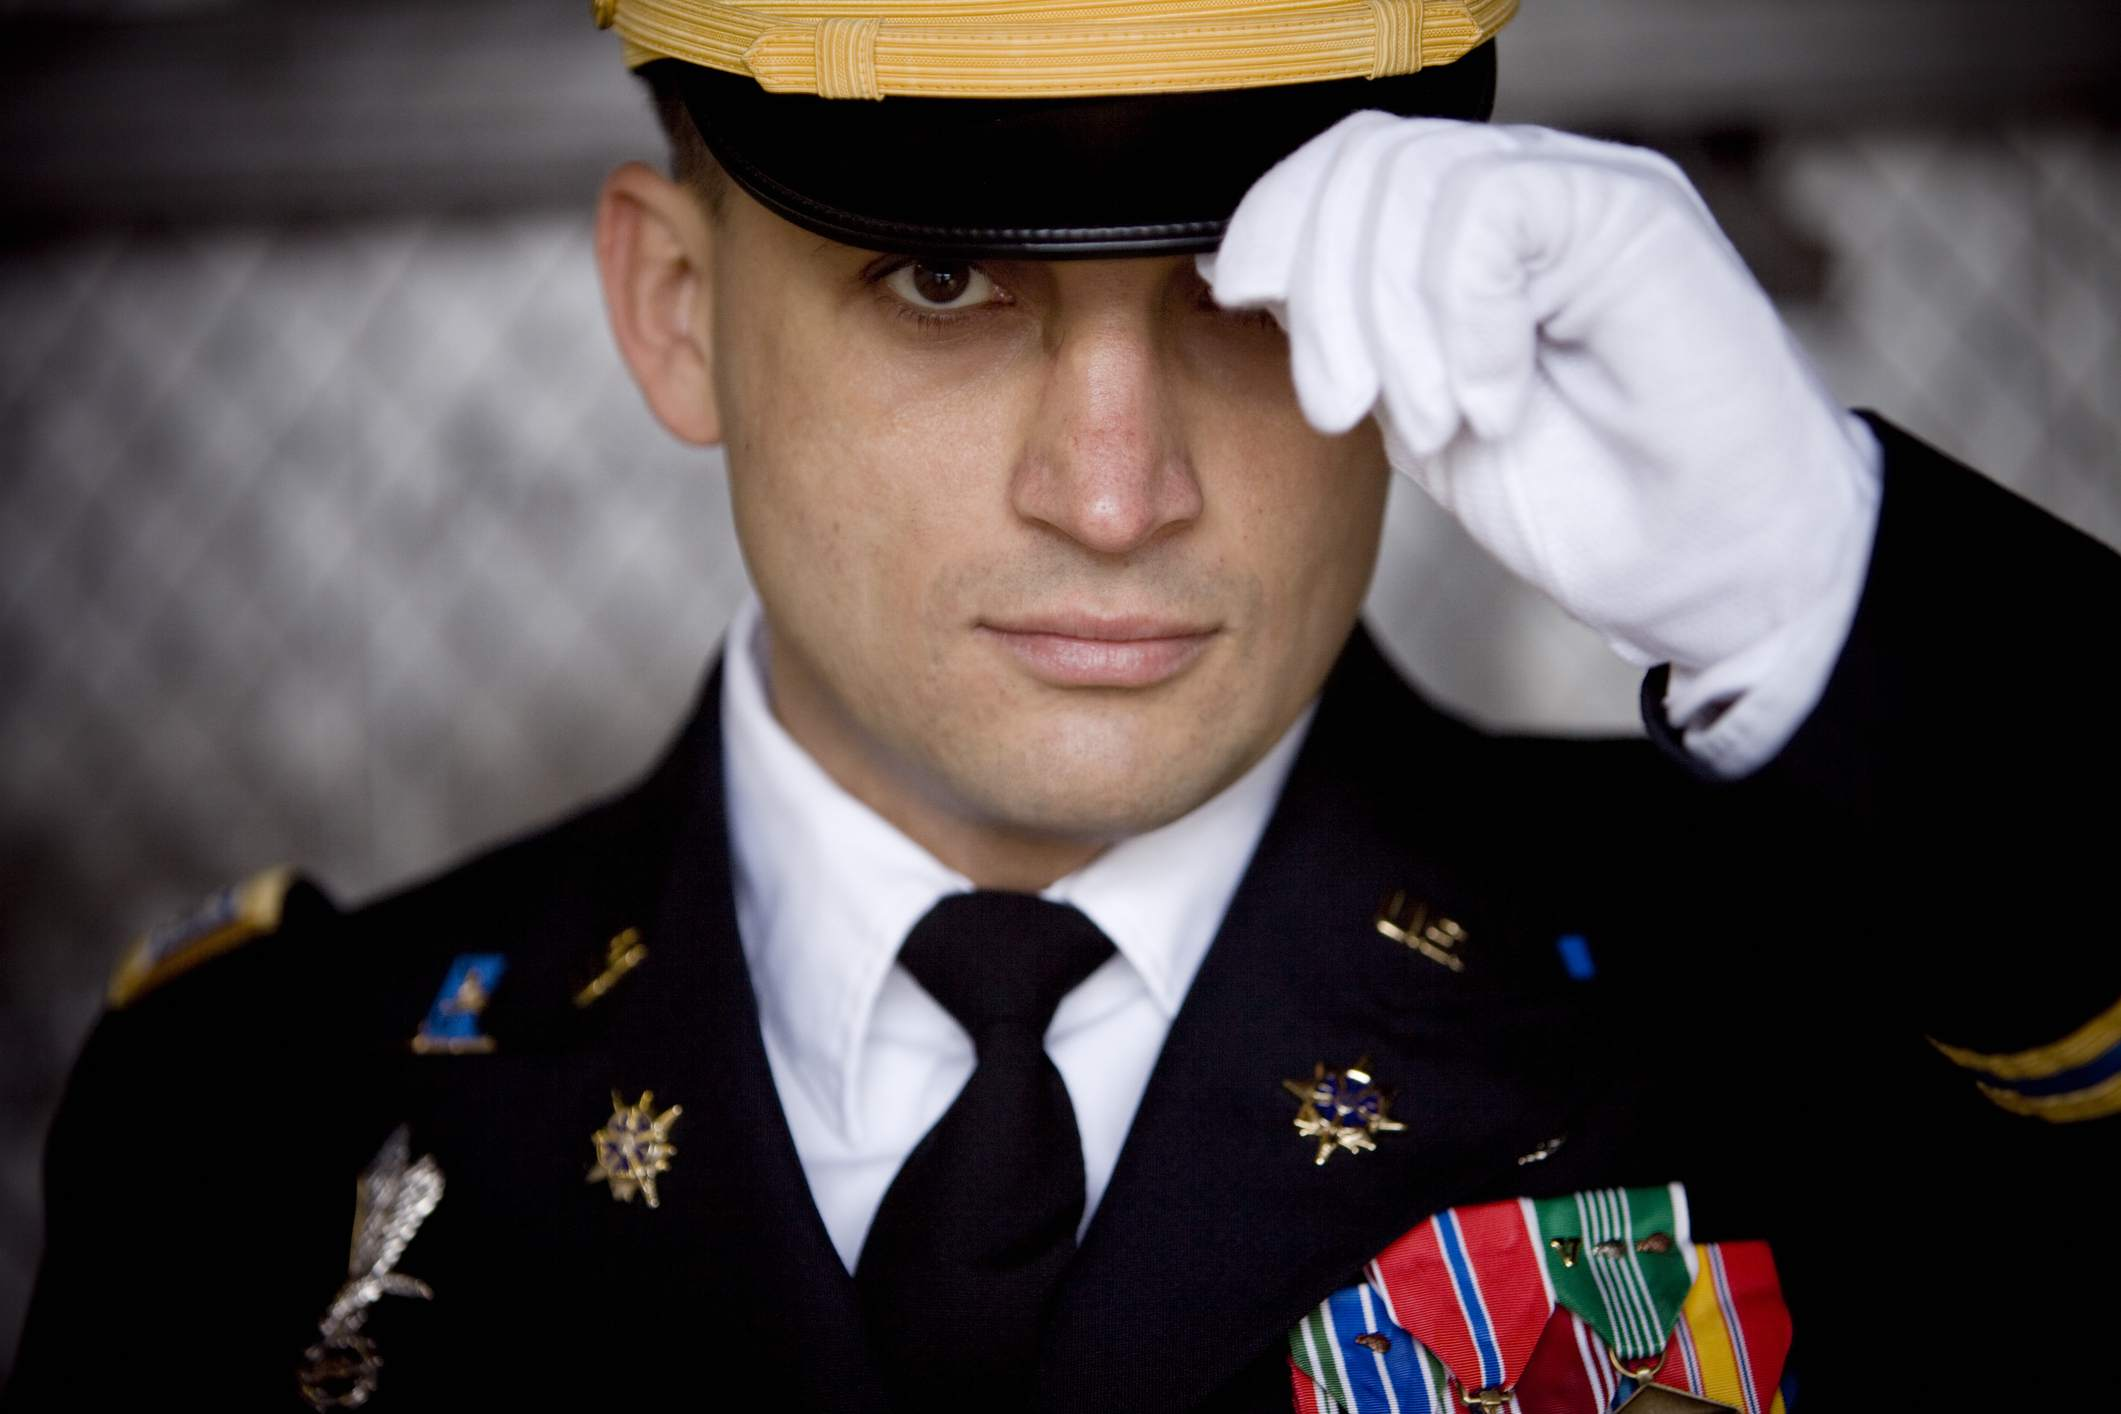 Soldier with medals